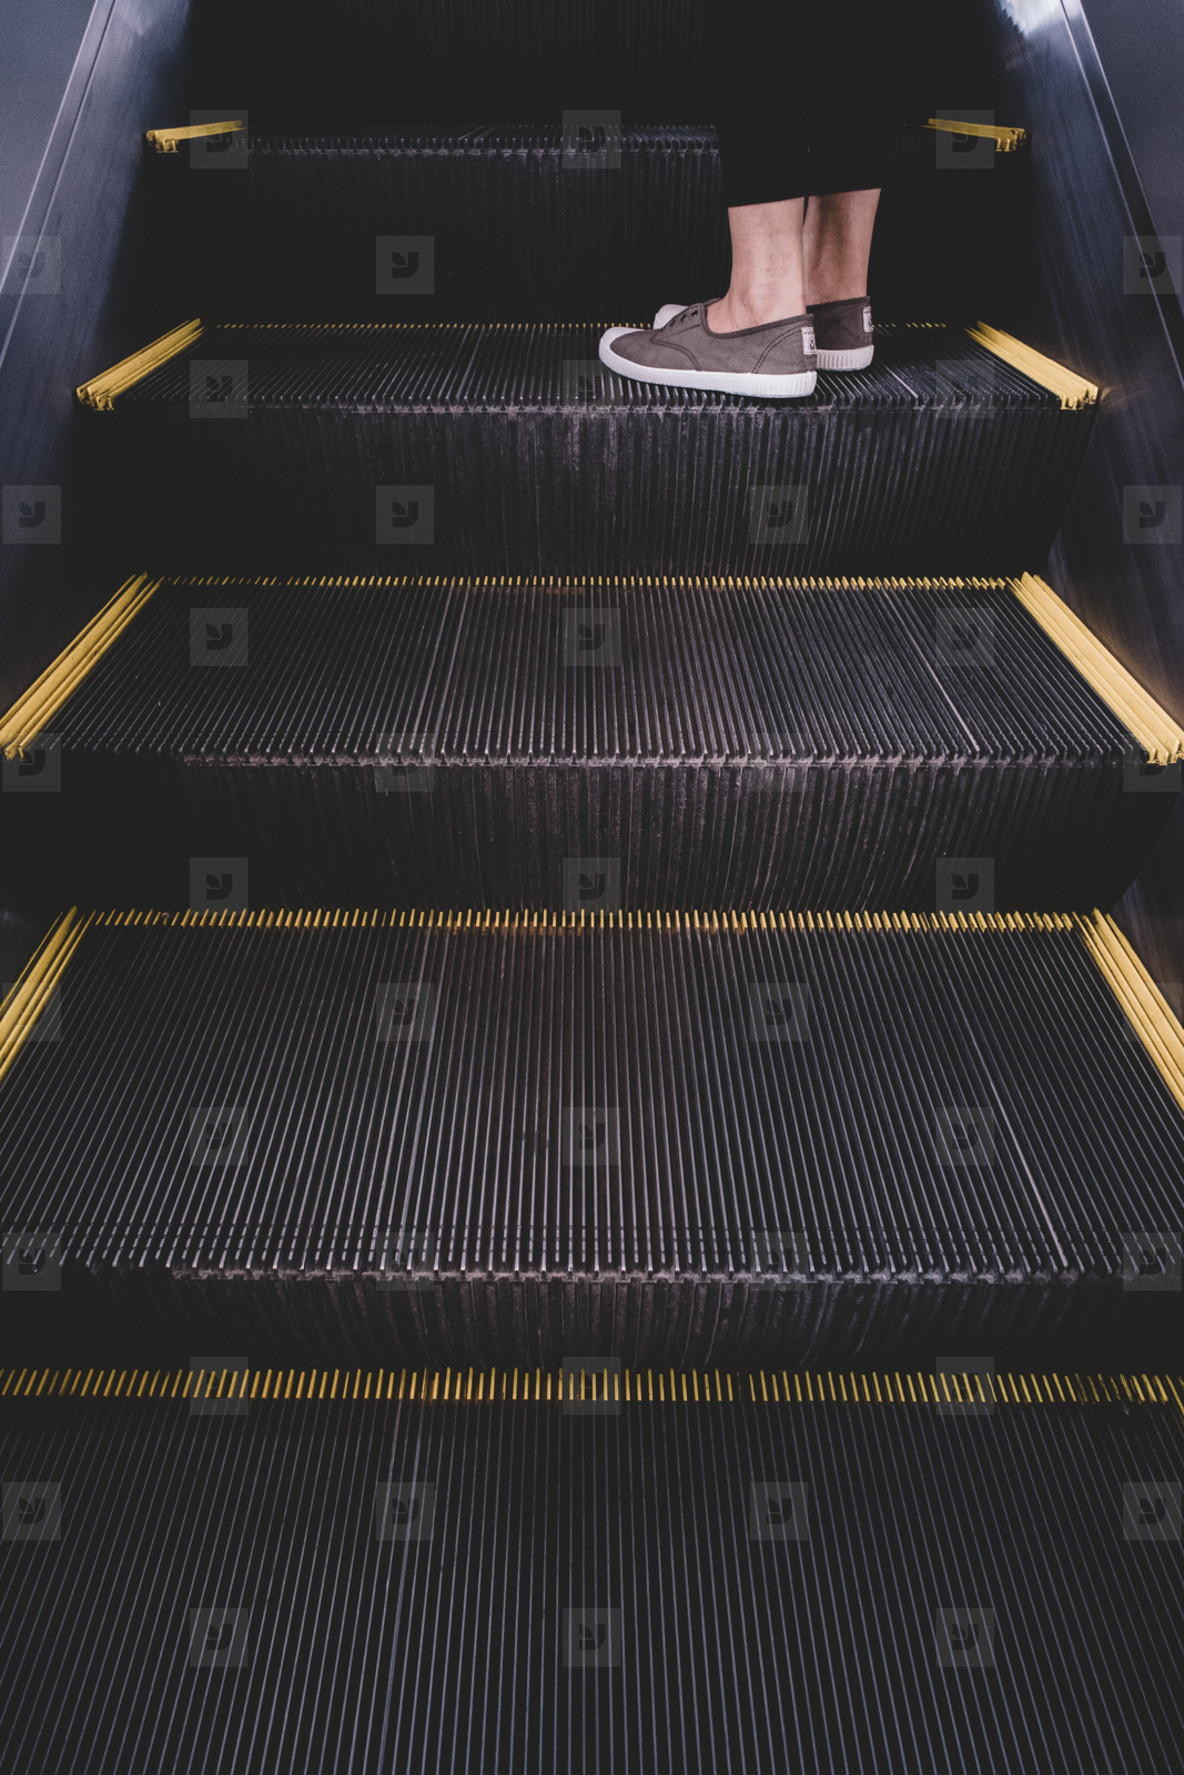 Escalator Shoes